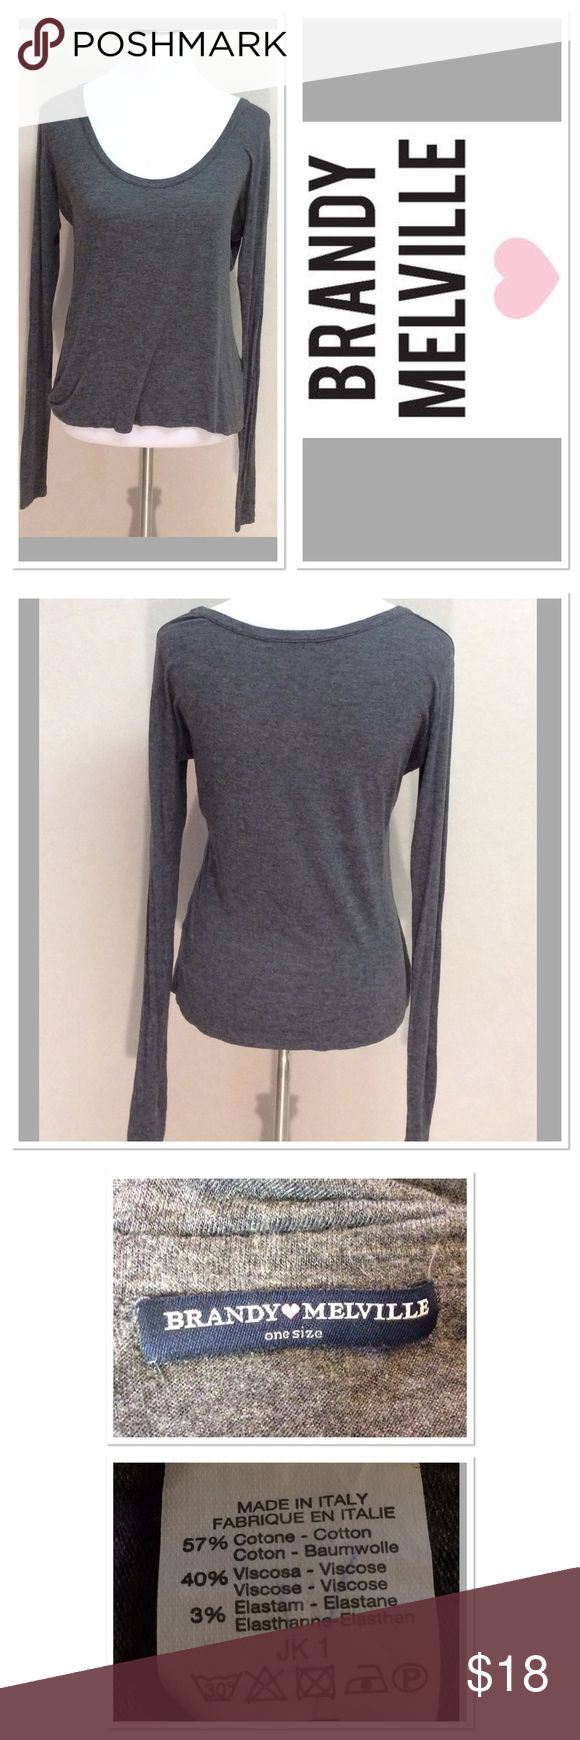 """OS BRANDY MELVILLE soft grey long sleeve top Brand: brandy Melville  Style: long sleeve scoop neck tee Size:one size Measurements: pit to pit 18"""" shoulder to hem 22"""" Material: 57% cotton 40% viscose 3% elastane  Features: made in Italy,can be worn off shoulder, soft light weight material  Condition: guc Brandy Melville Tops"""